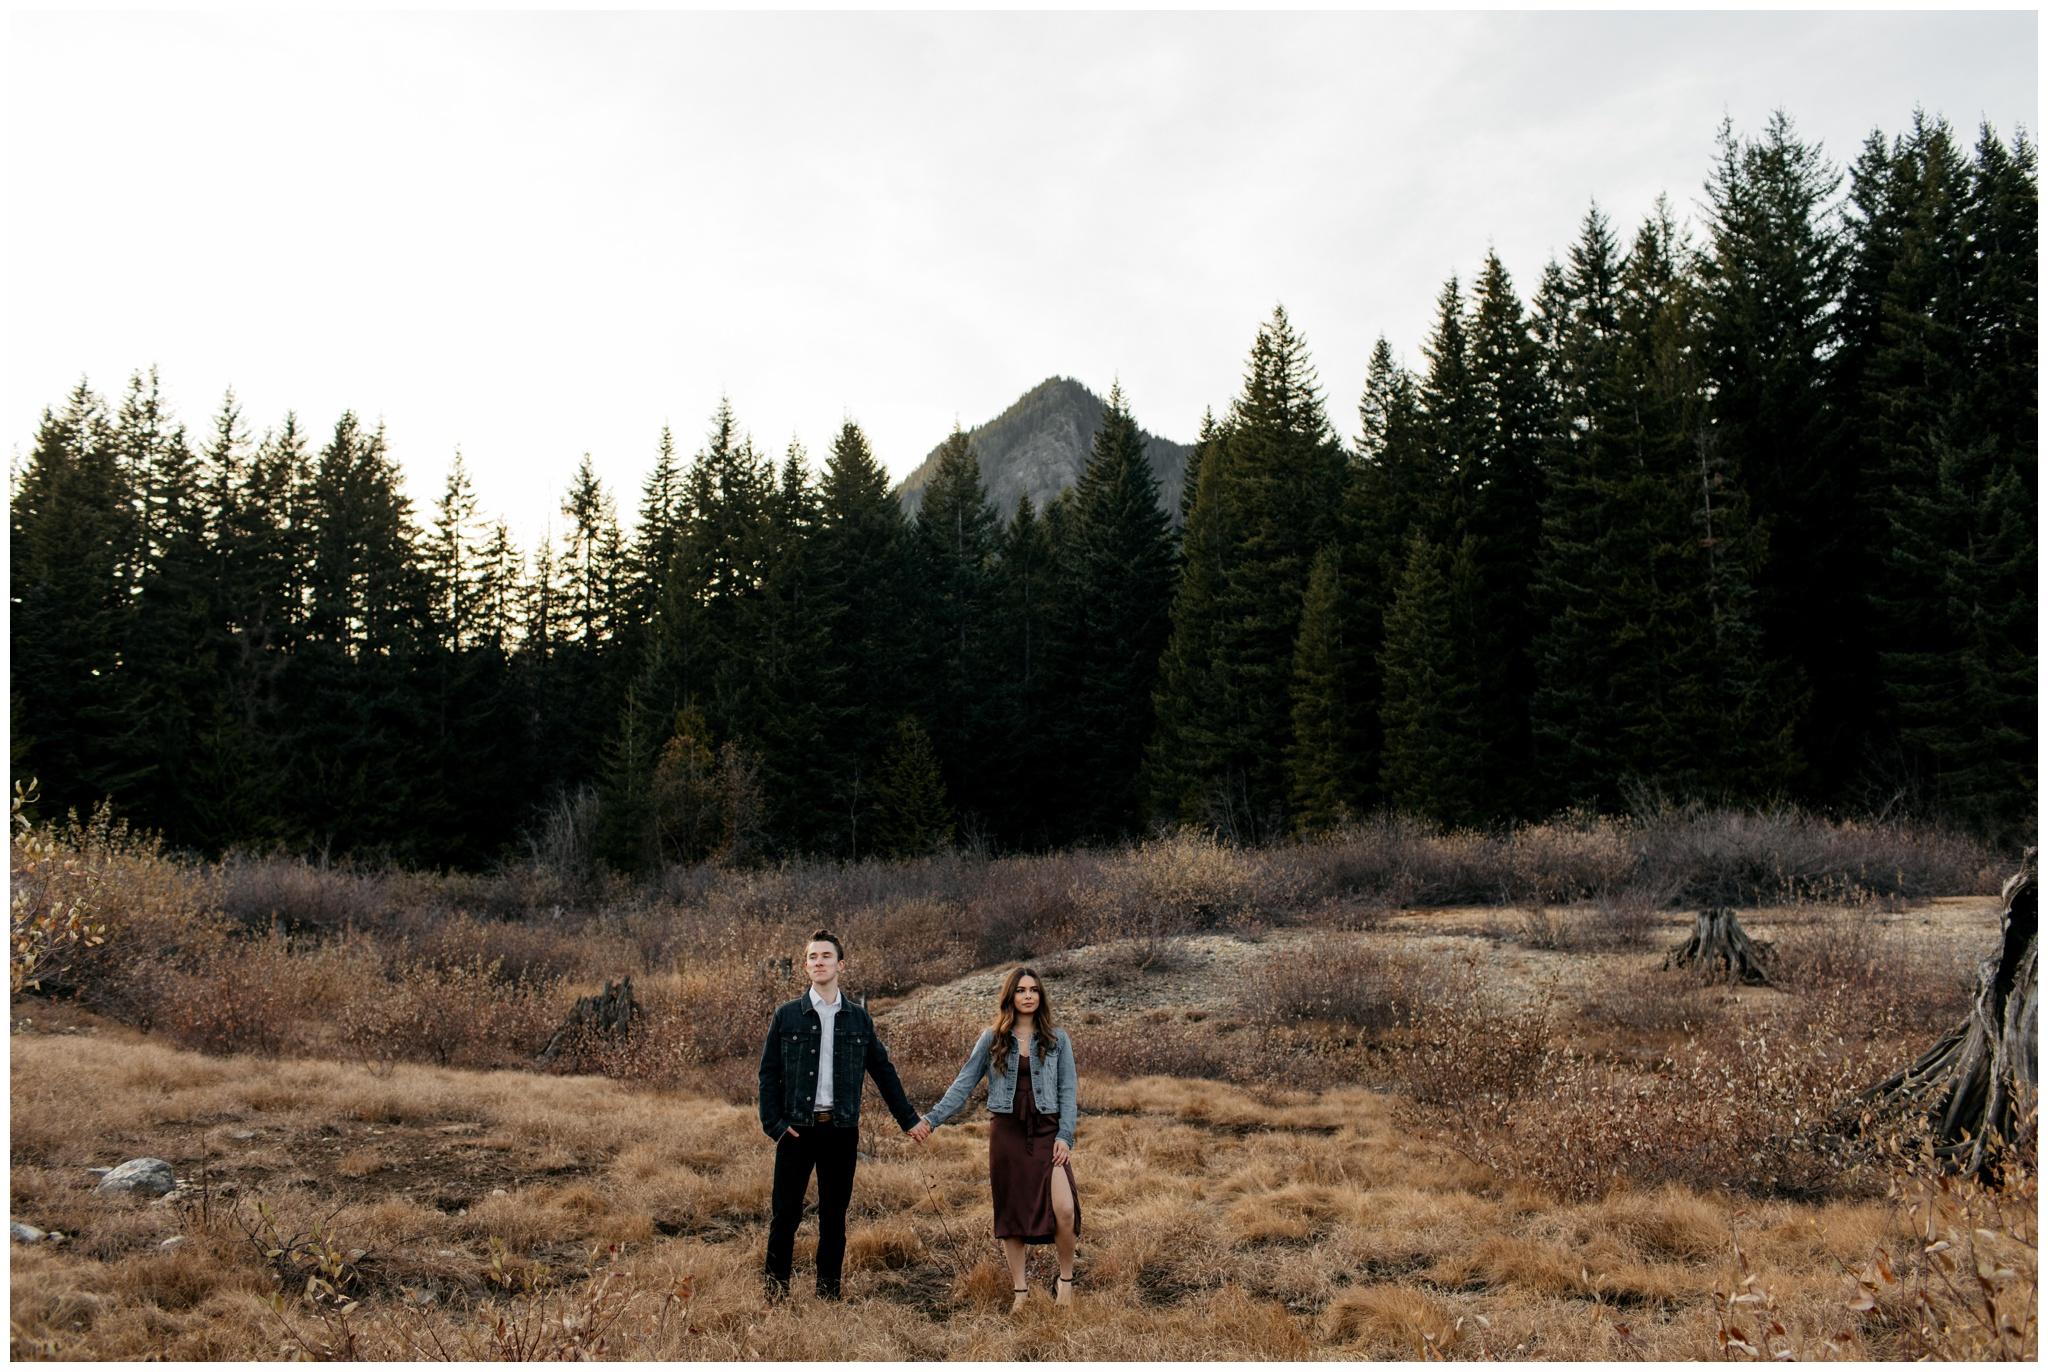 Intimate fall engagement session at Keechelus Lake Snoqualmie Pass Washington with Brittney Hyatt Photography